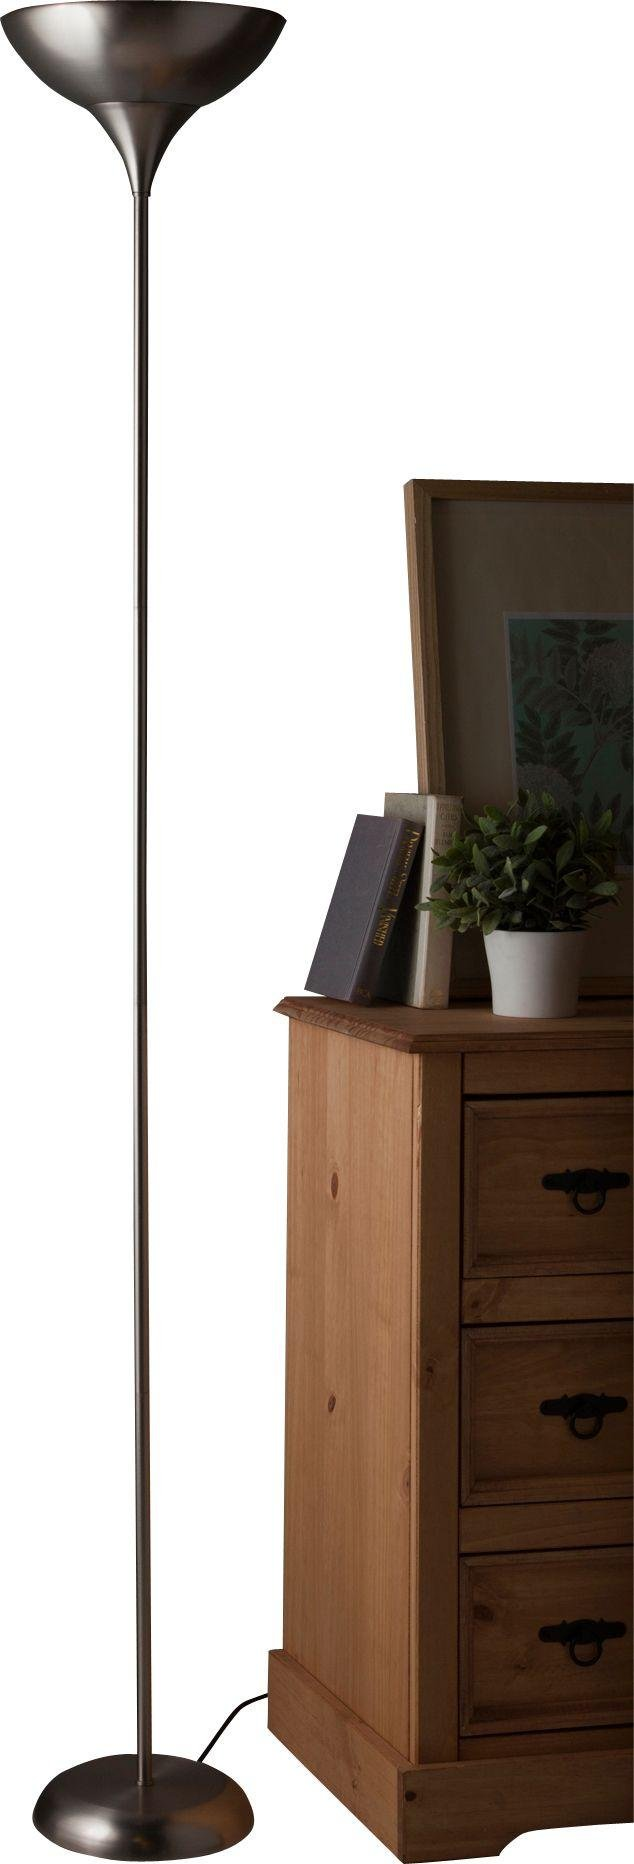 Uplighter floor lamps argos buy home torchiere uplighter floor lamp brushed chrome